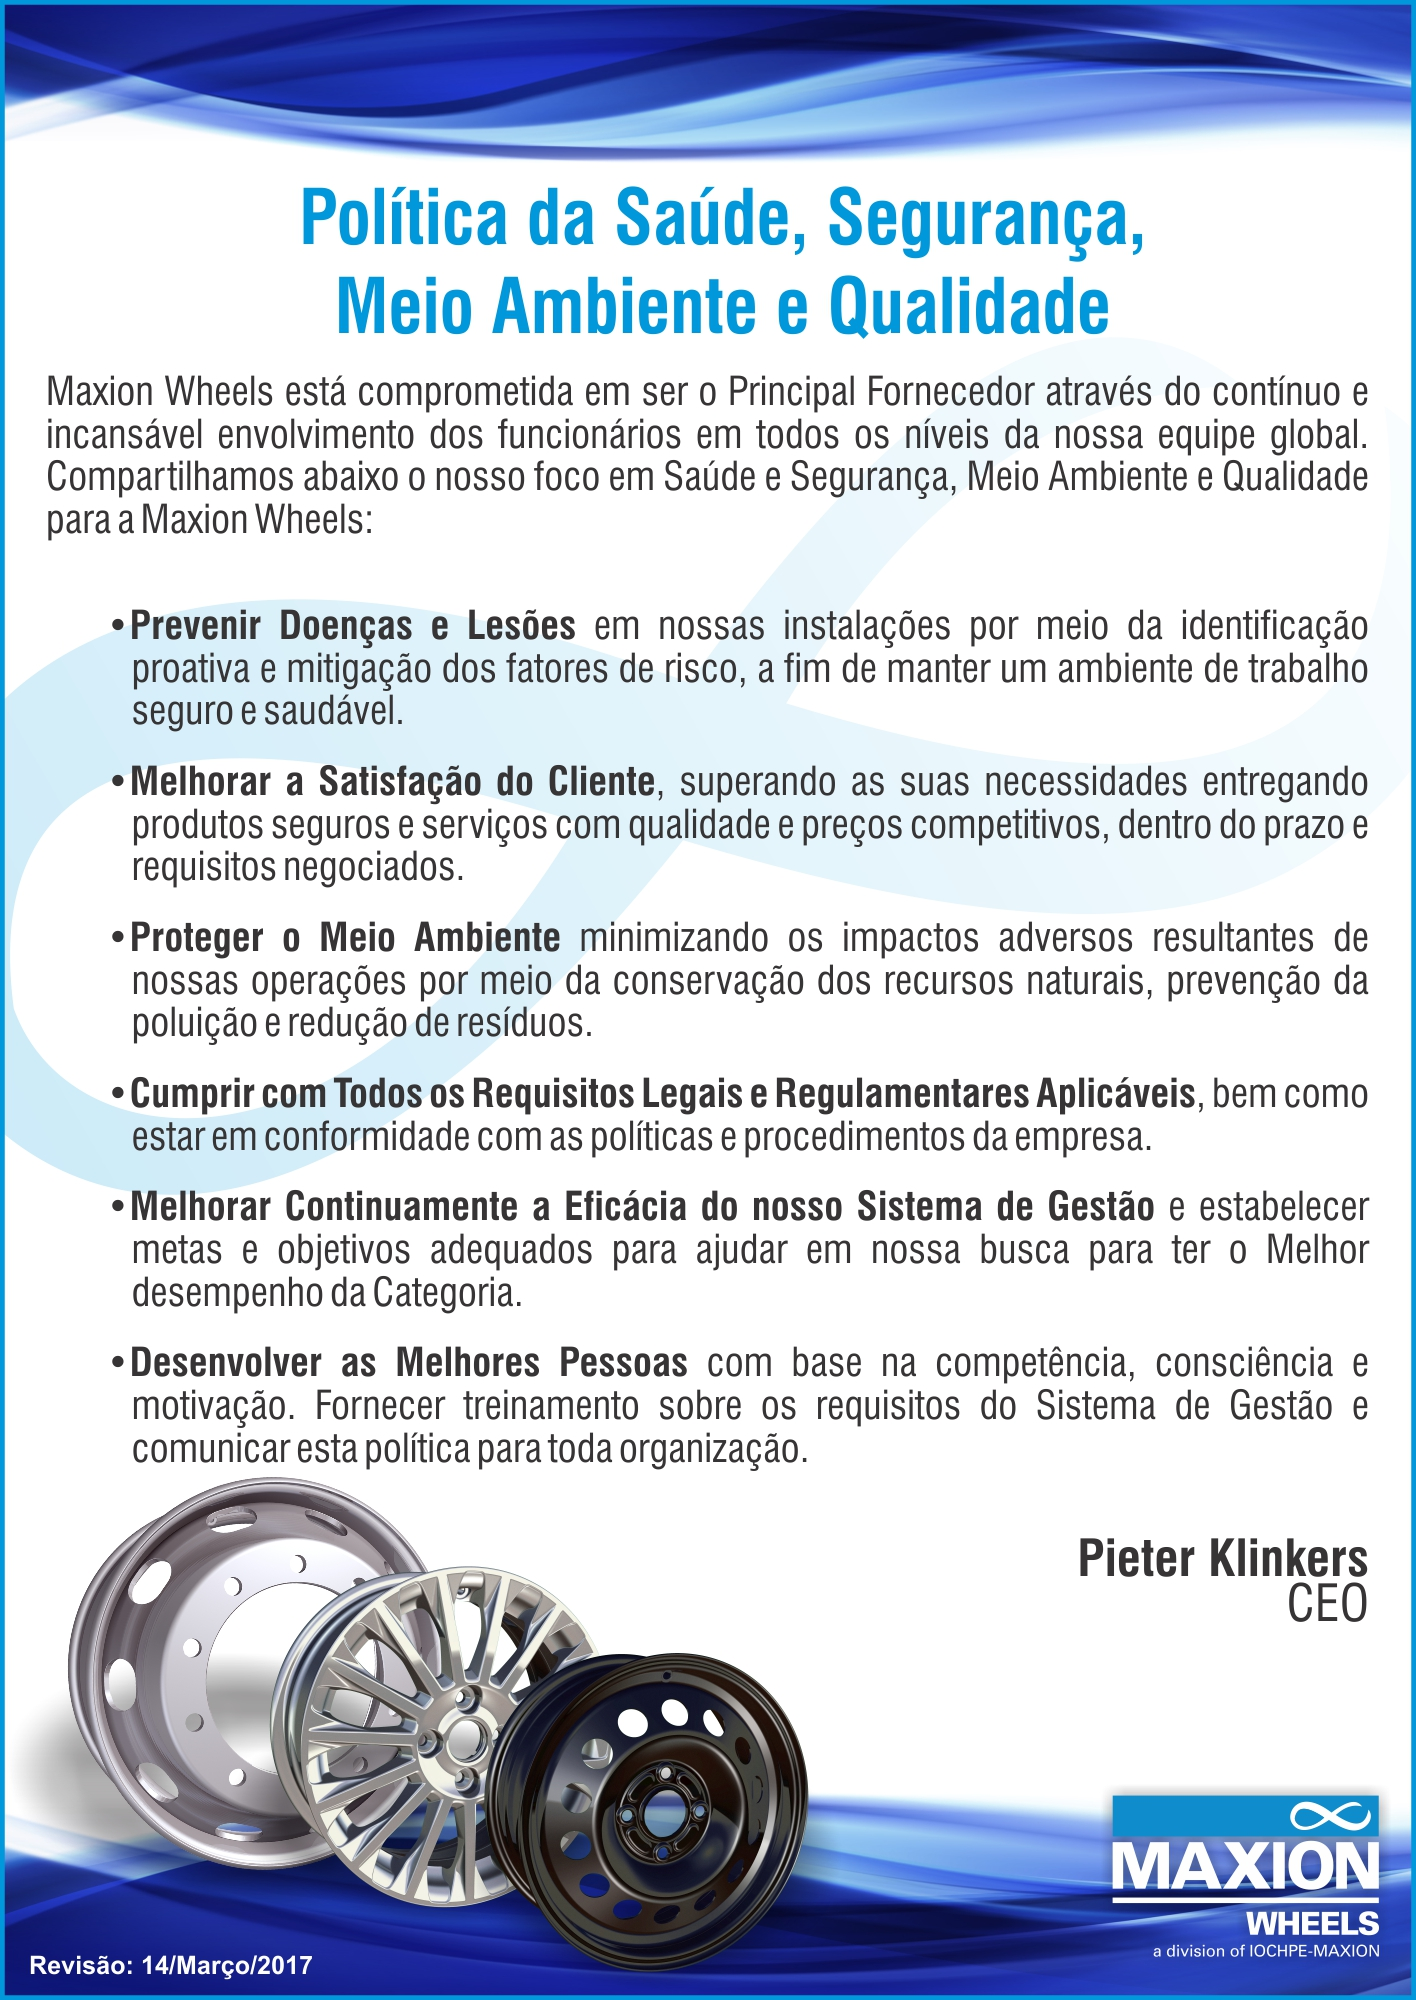 Maxion Wheels HSEQ Policy Statement (Portuguese)